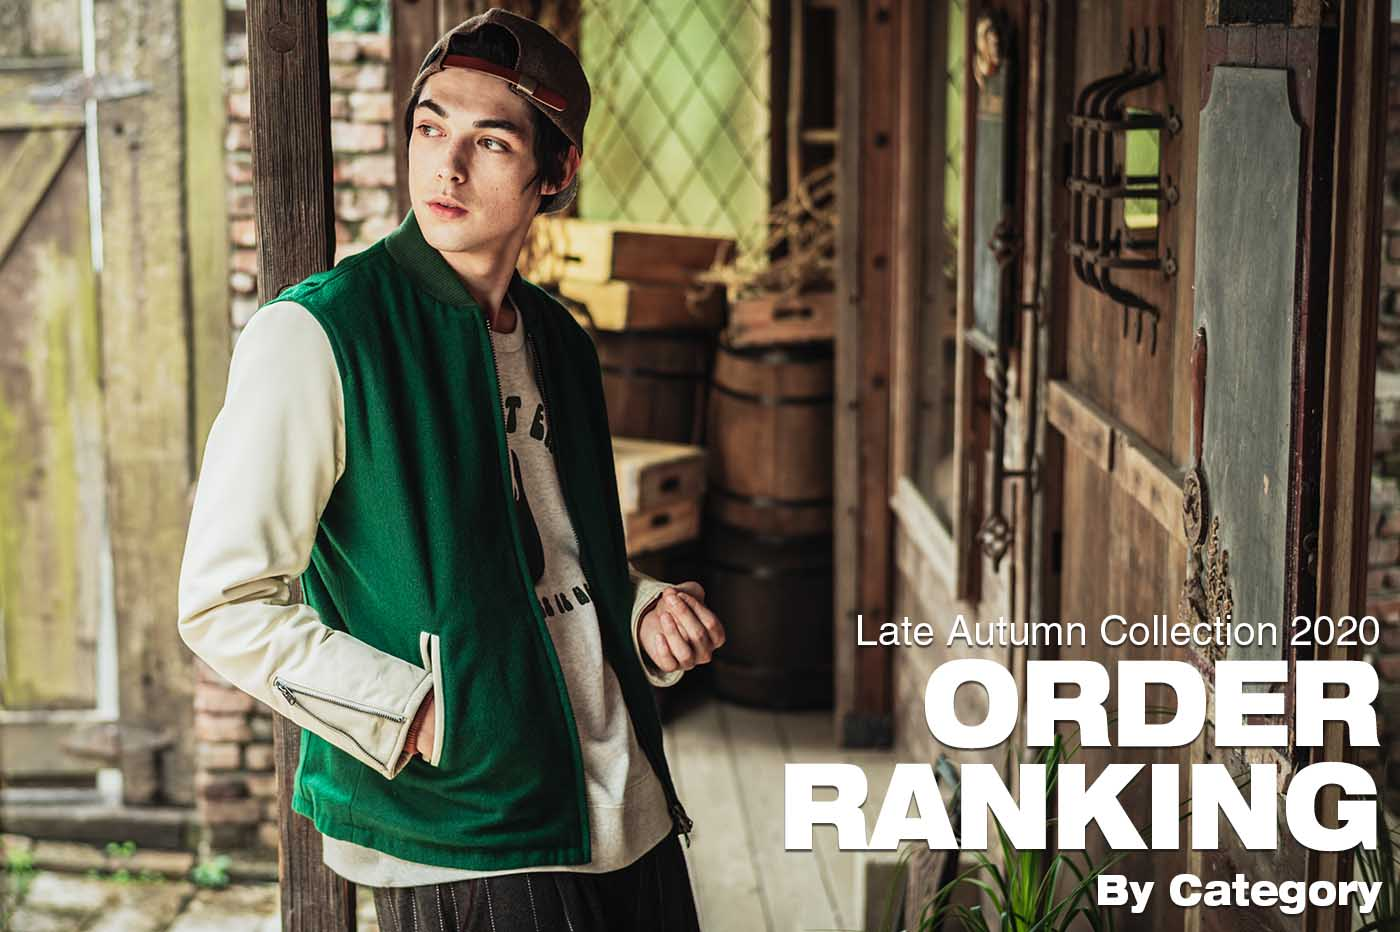 Late Autumn Collection 2020 ORDER RANKING